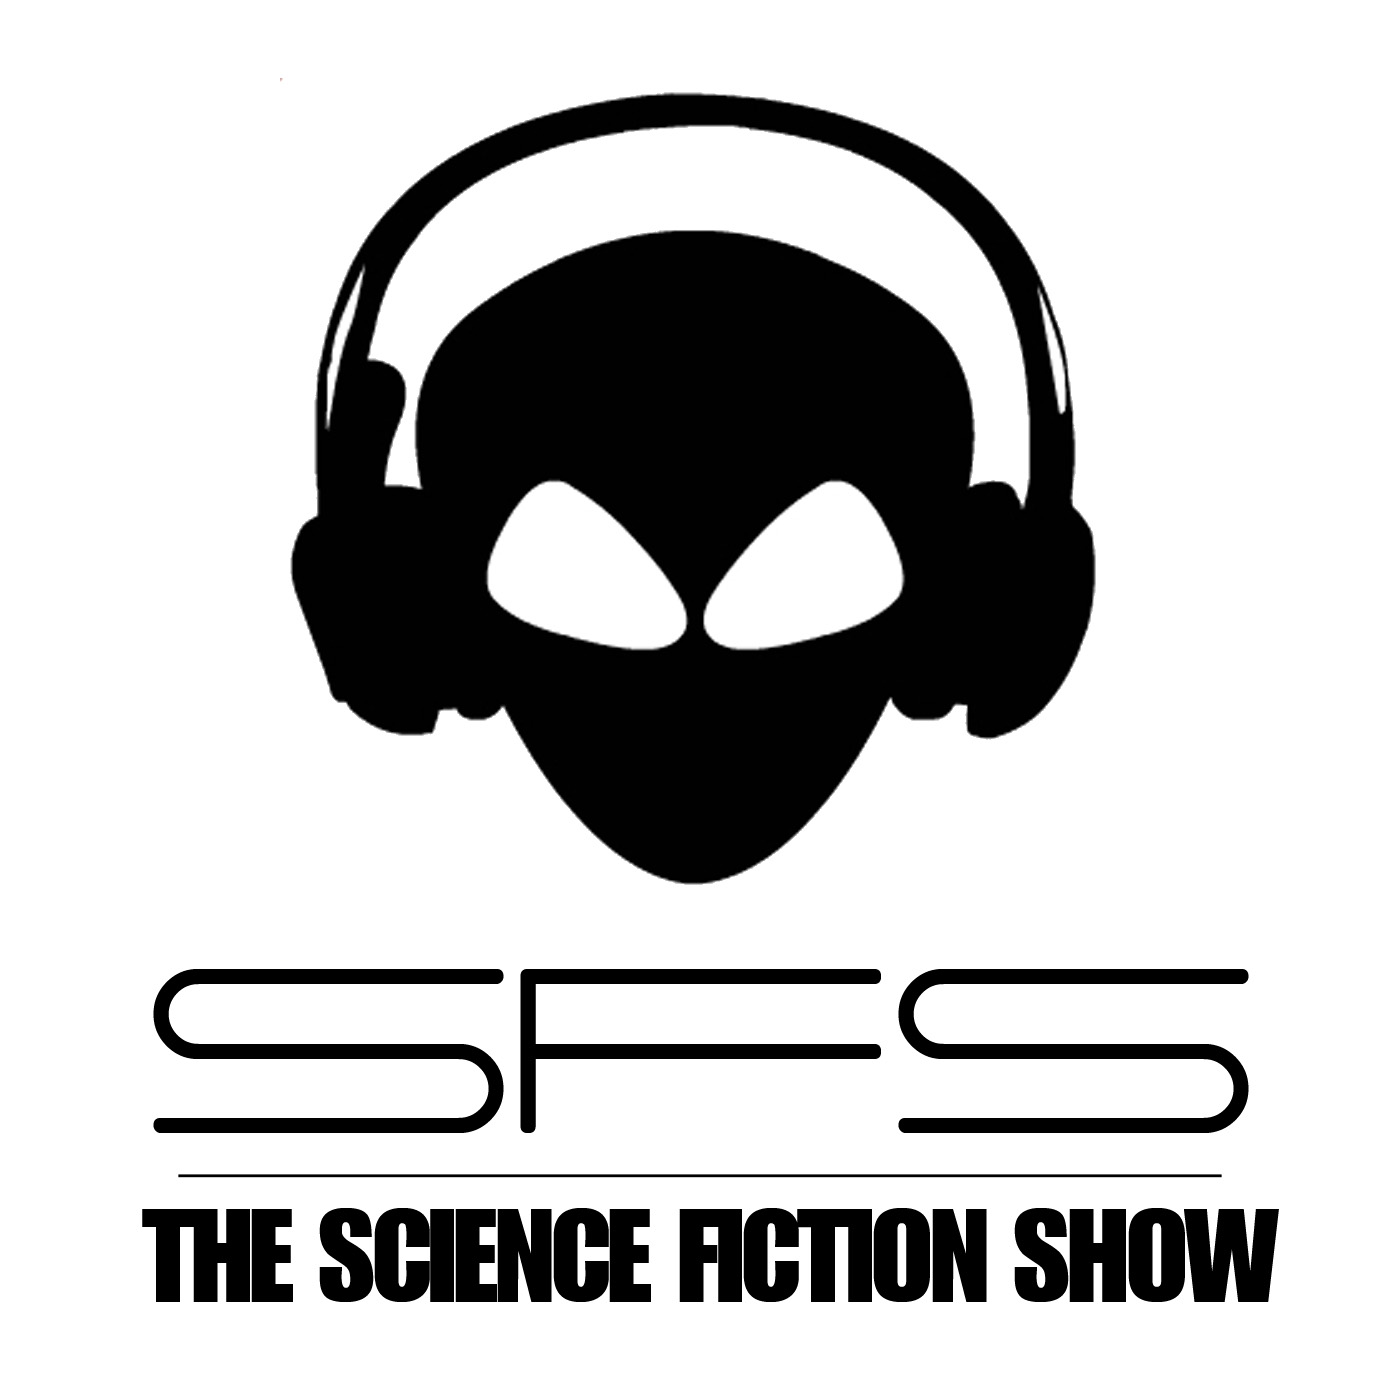 EP 88: Force Awakens Speculation, George Lucas & 501st Weaponless